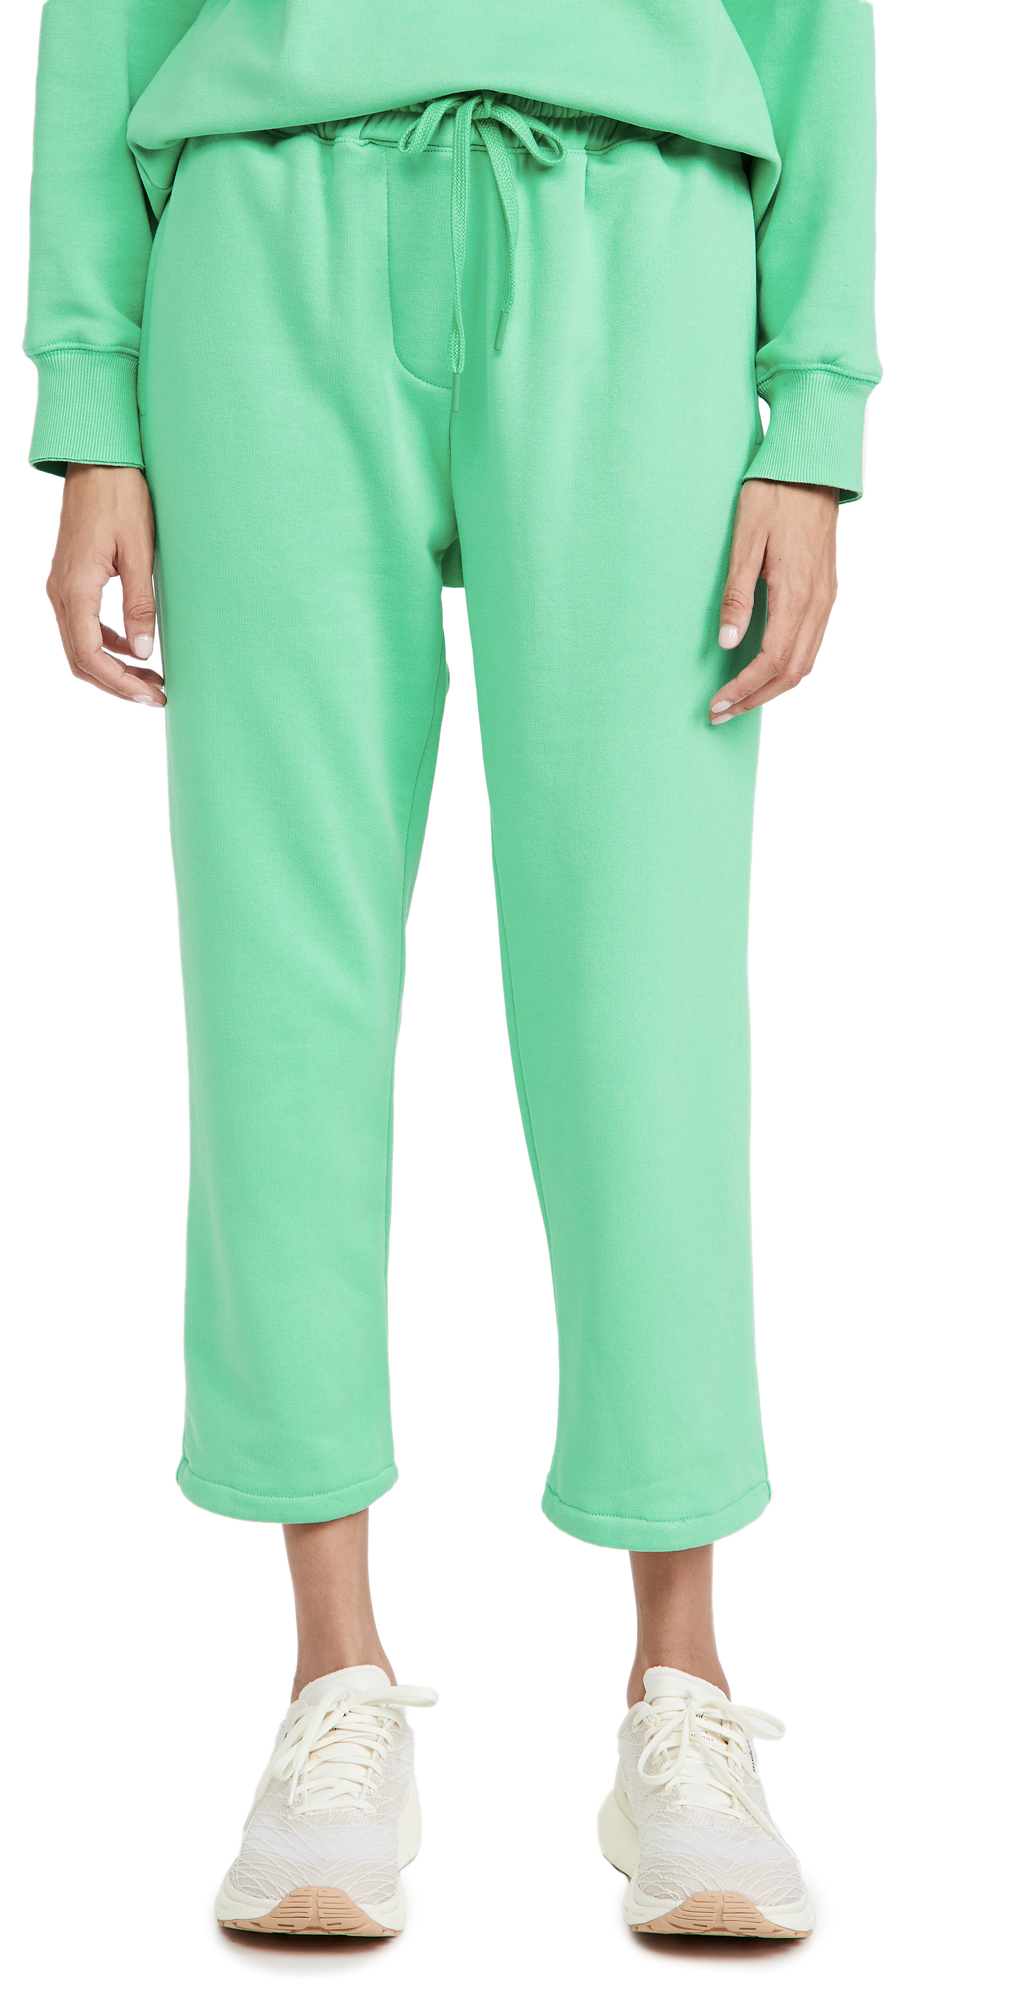 pushBUTTON Drawstring Green Jogger Pants